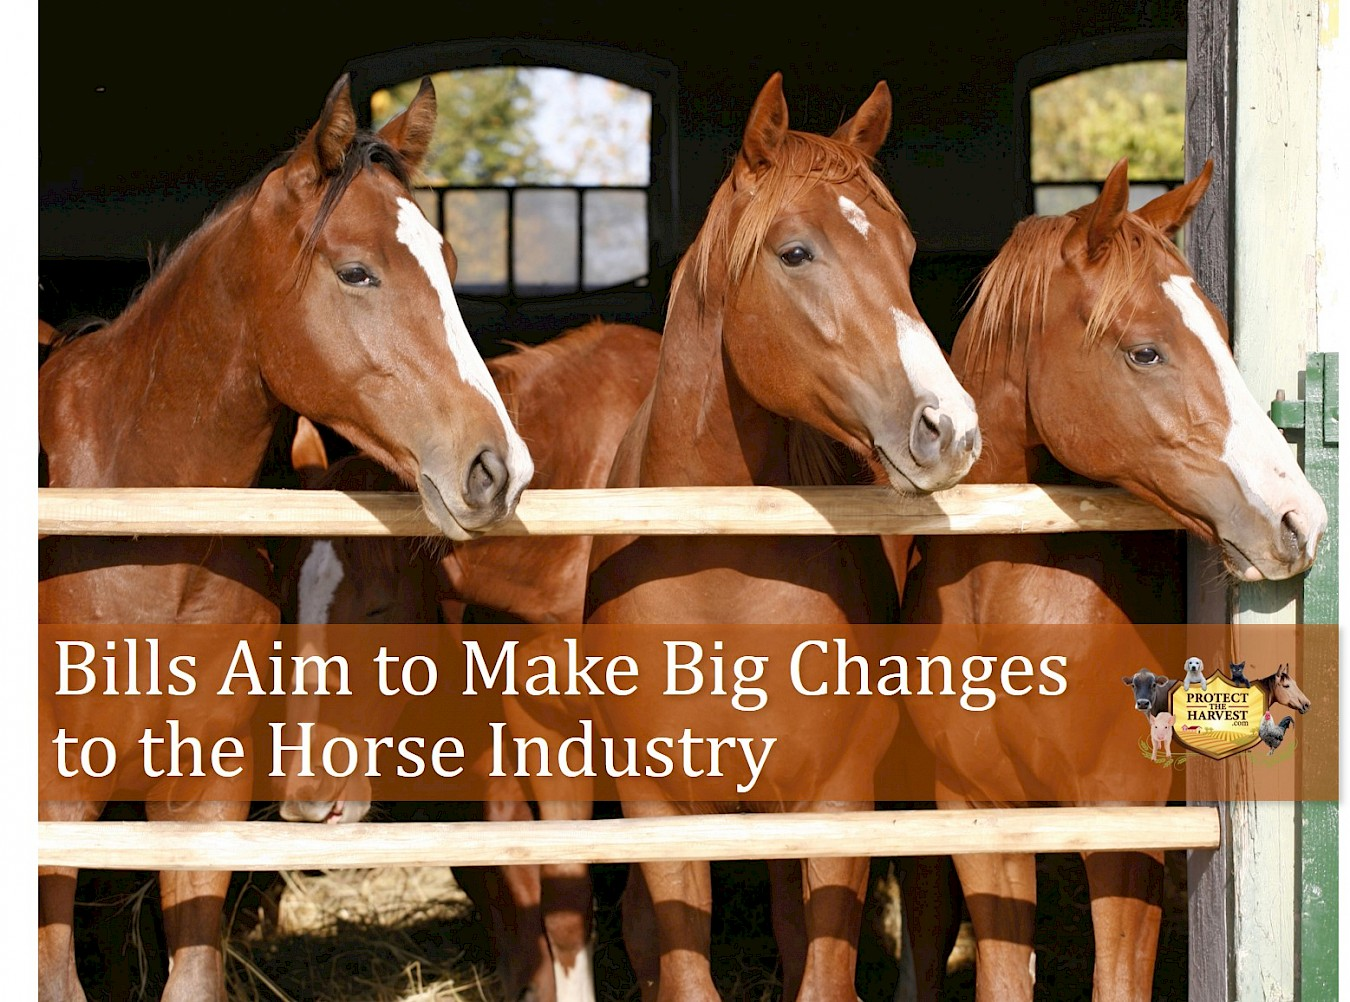 Bills Aim to Make Big Changes to the Horse Industry